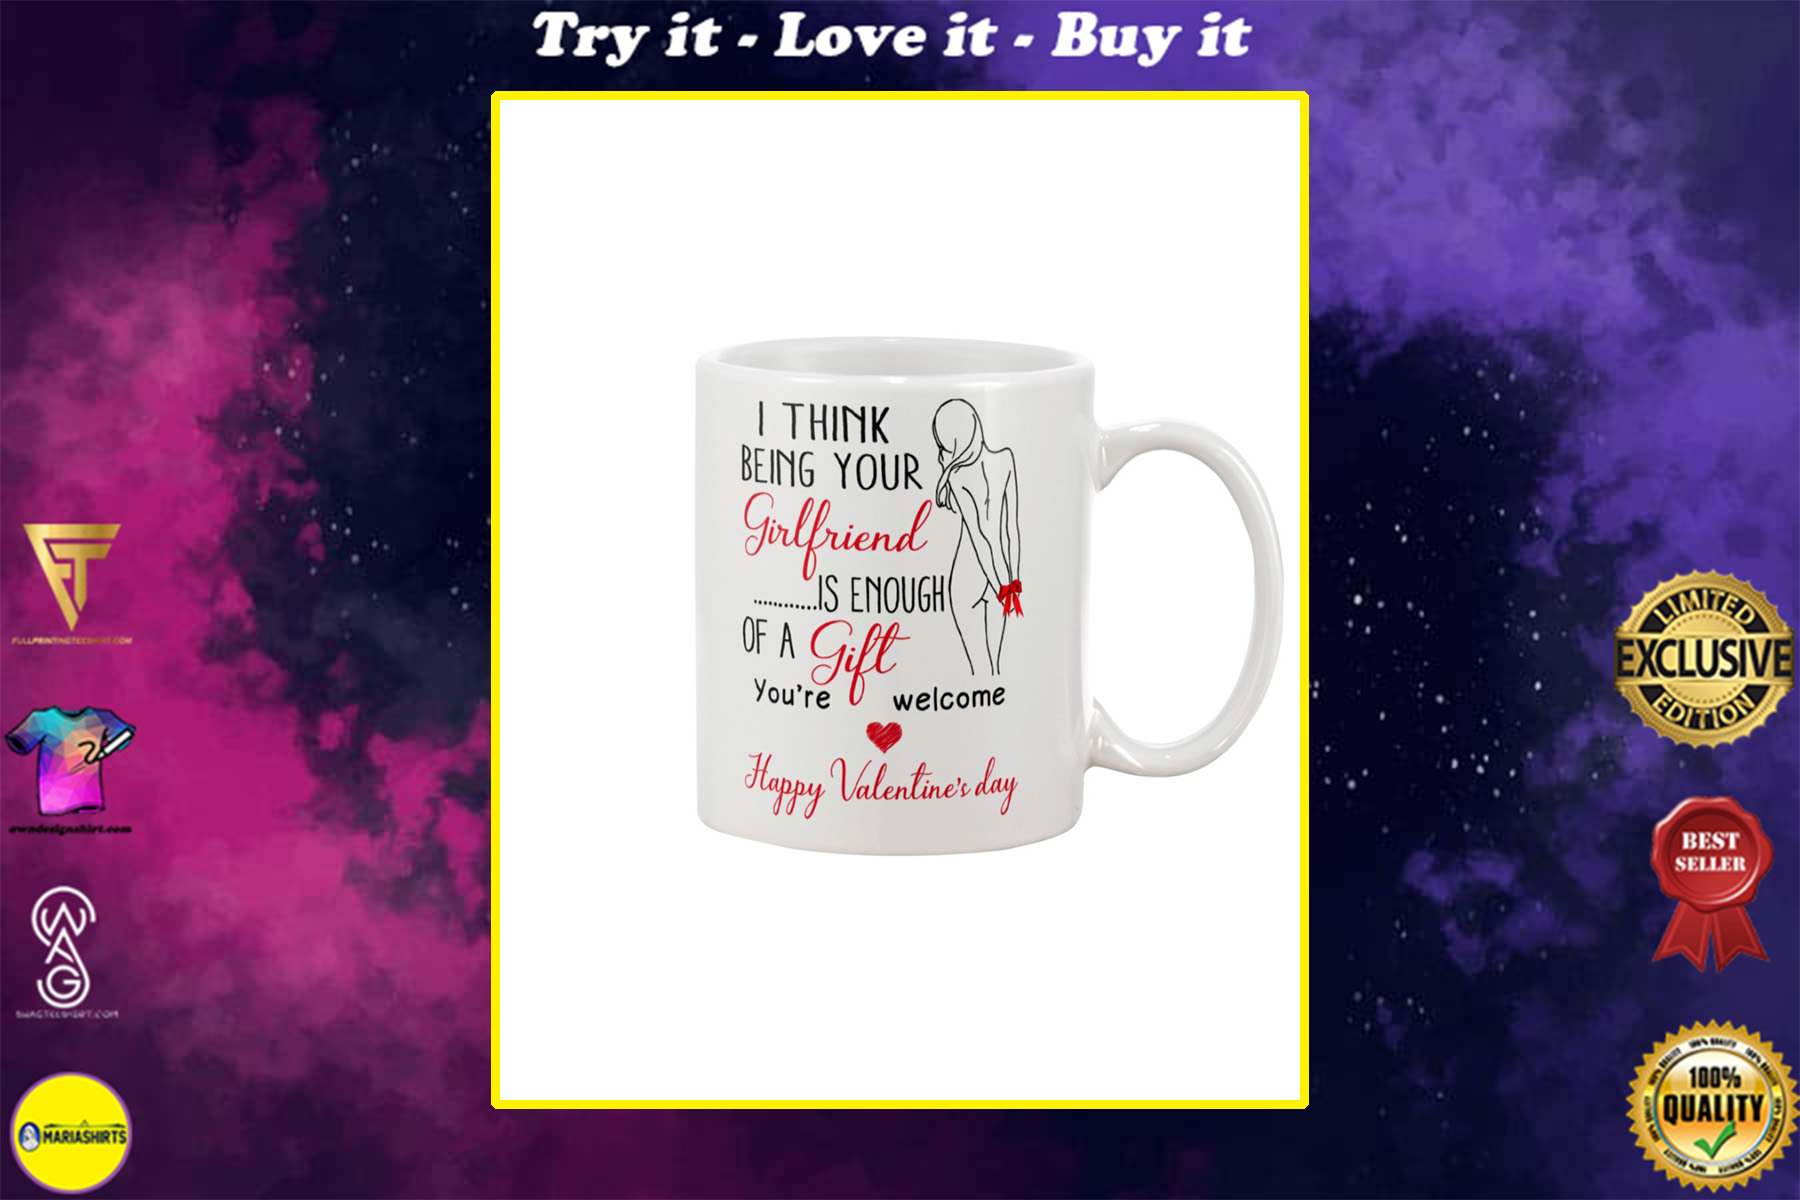 i think being your girlfriend is enough of a gift happy valentine's day mug